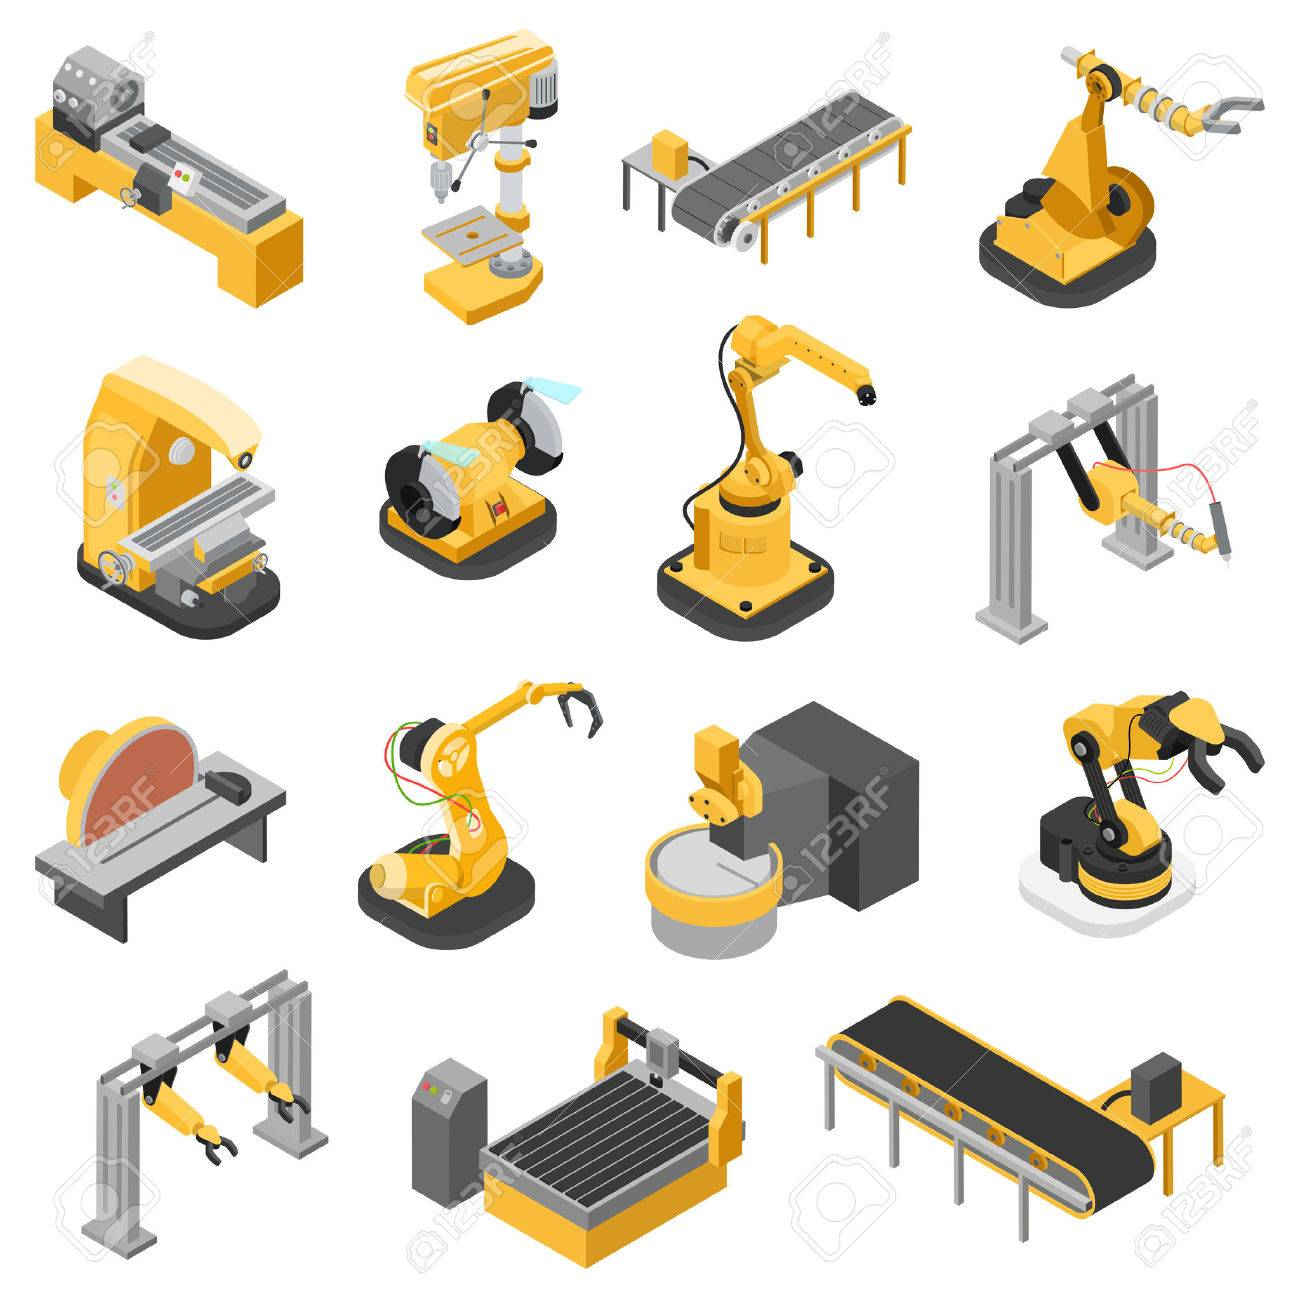 Flat 3d isometric heavy industry machinery icon set concept web infographics vector illustration. Woodworking power-saw ench jigsaw manipulator robot robotics robotized. Creative people collection. Stock Vector - 56931672